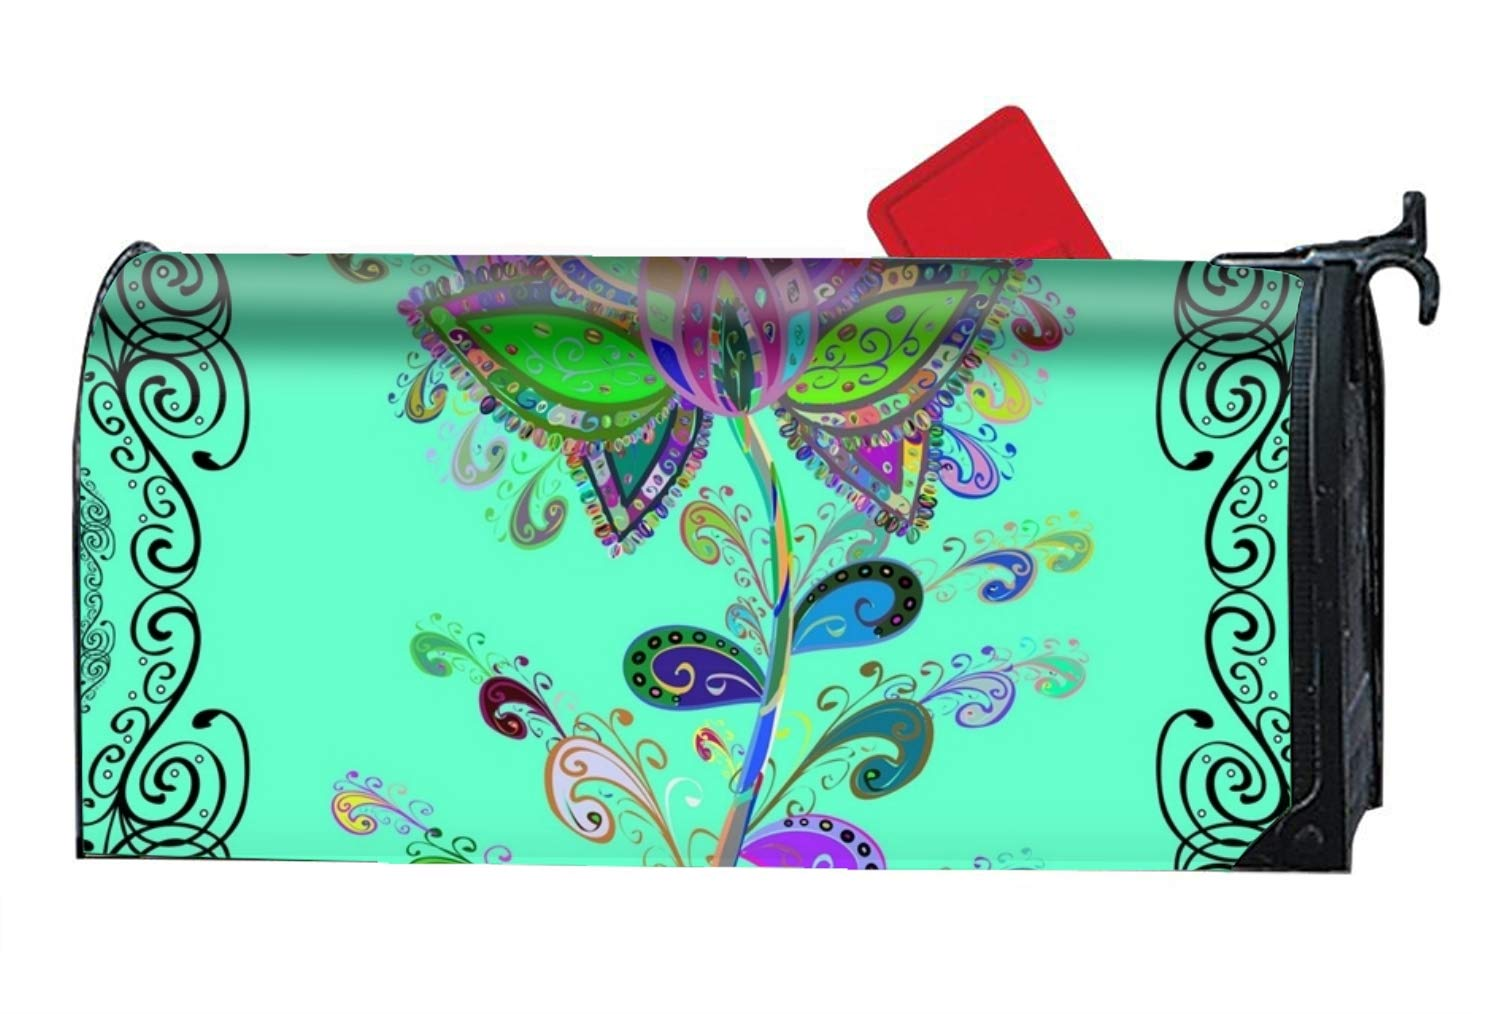 BABBY Mailbox Cover-Abstrace Colored Flora Magnetic Mail Box Cover-Cylinder Packaged by BABBY